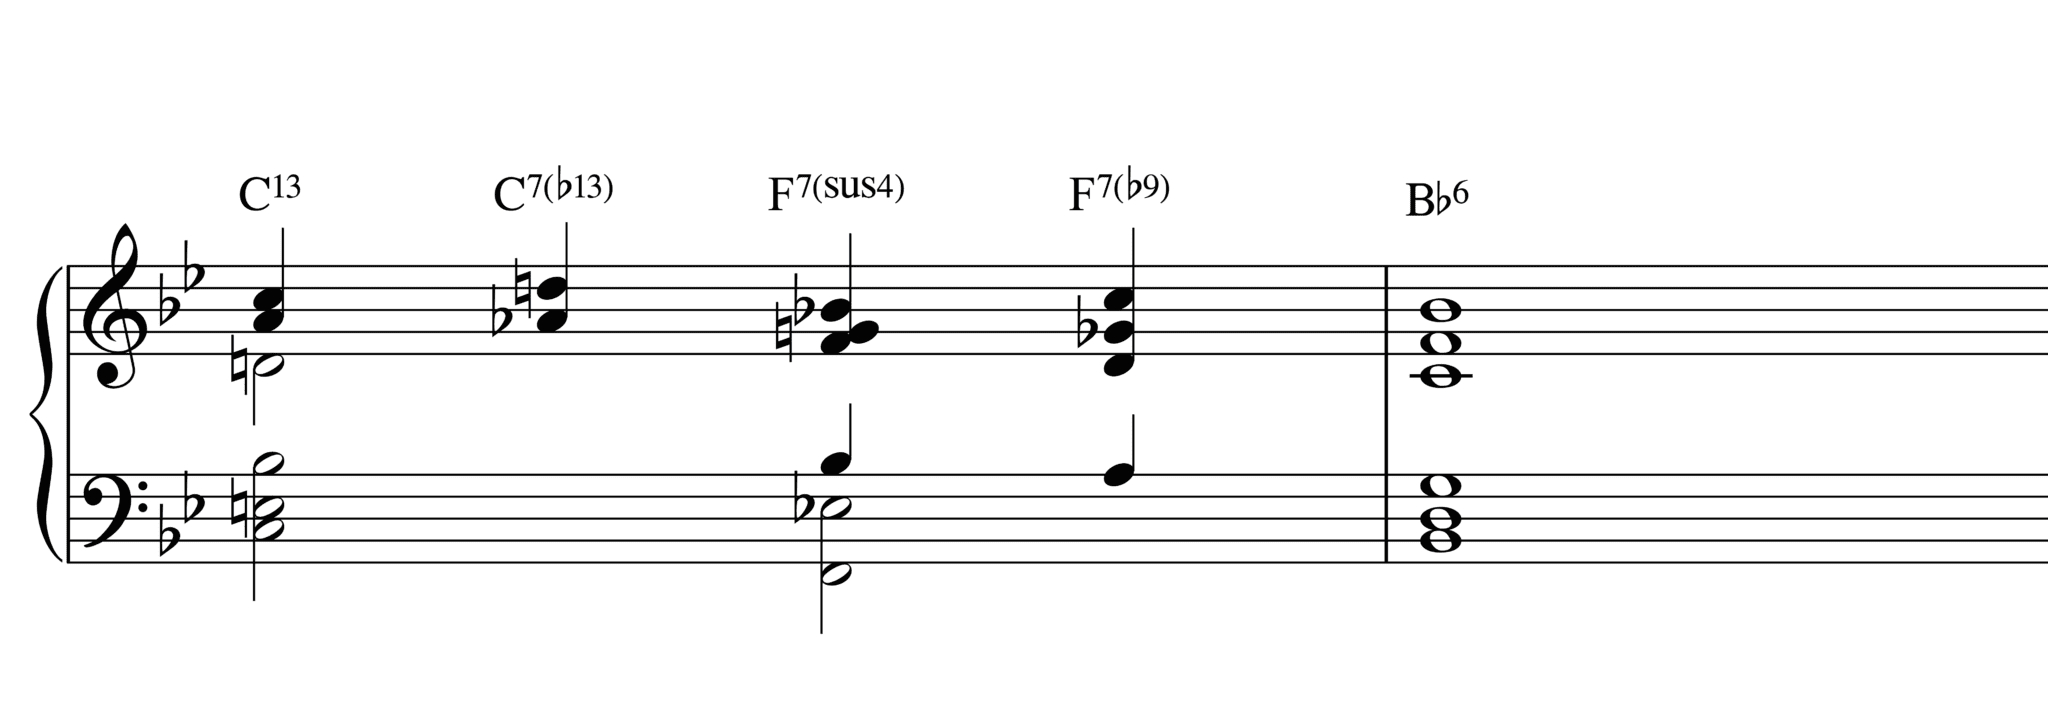 Set A Fire Chords Easy Reharmonization Keep The Root Change The Chord Quality You